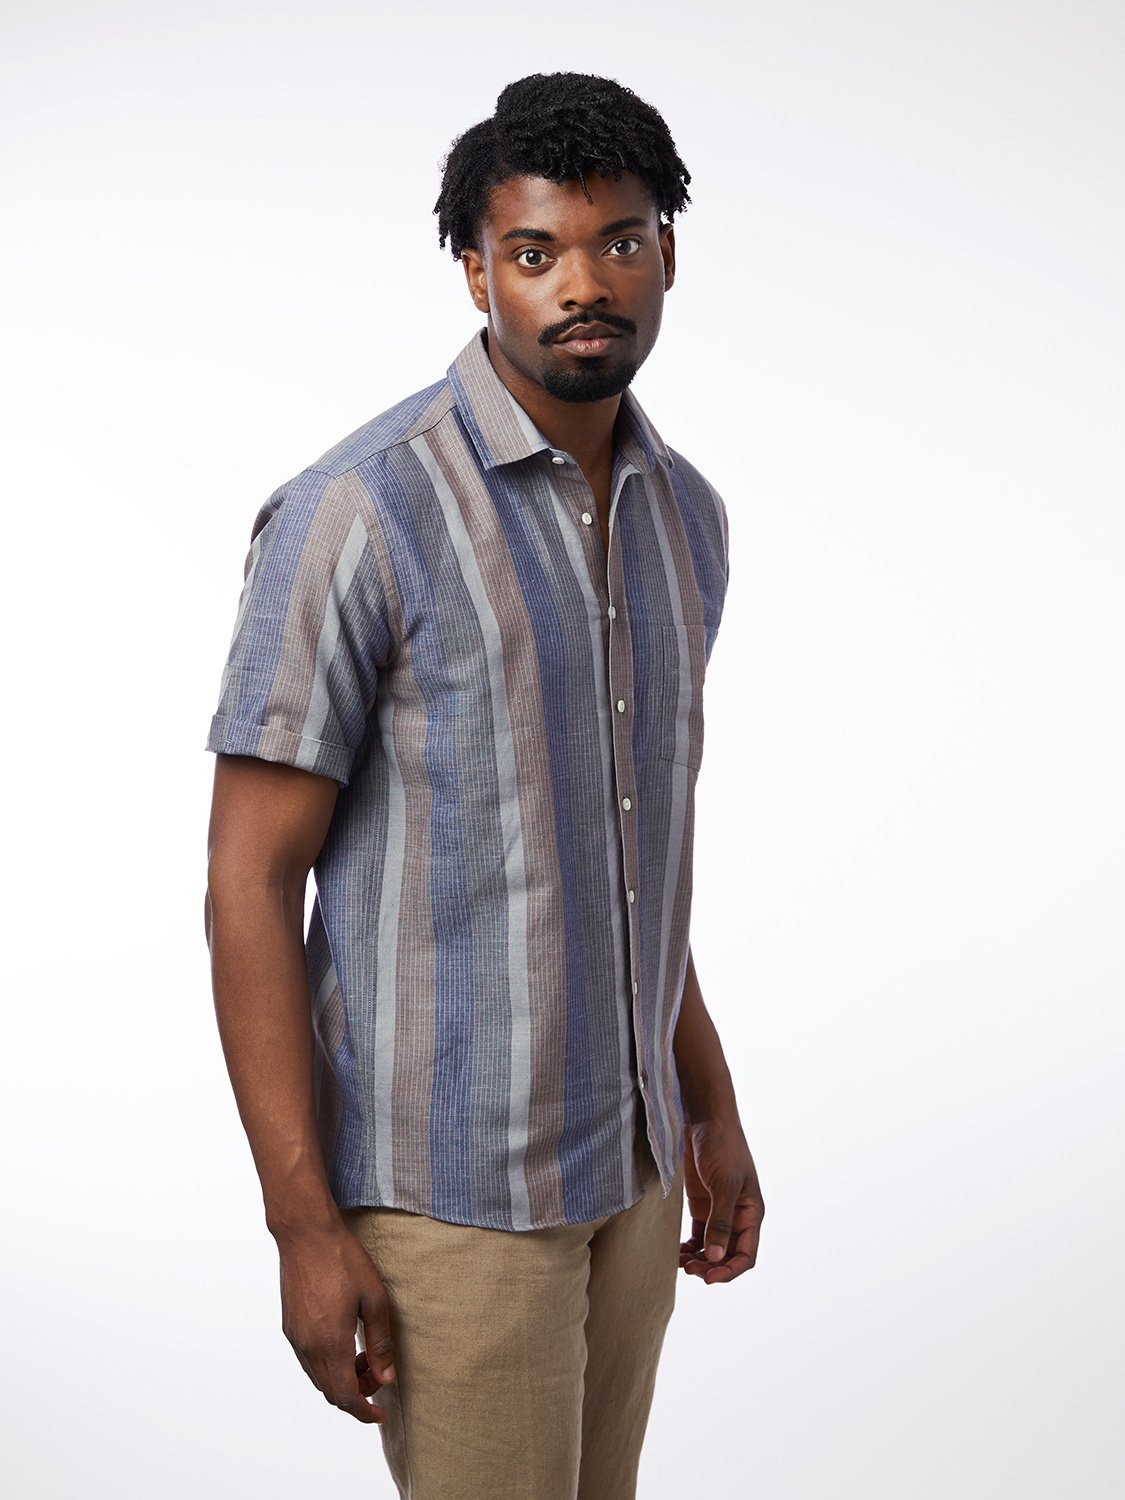 carpasus sustainable organic cotton and linen short sleeve shirt letten navy. Nachhaltiges Carpasus Hemd Letten Kurzarm aus Bio Baumwolle und Leinen in Navy